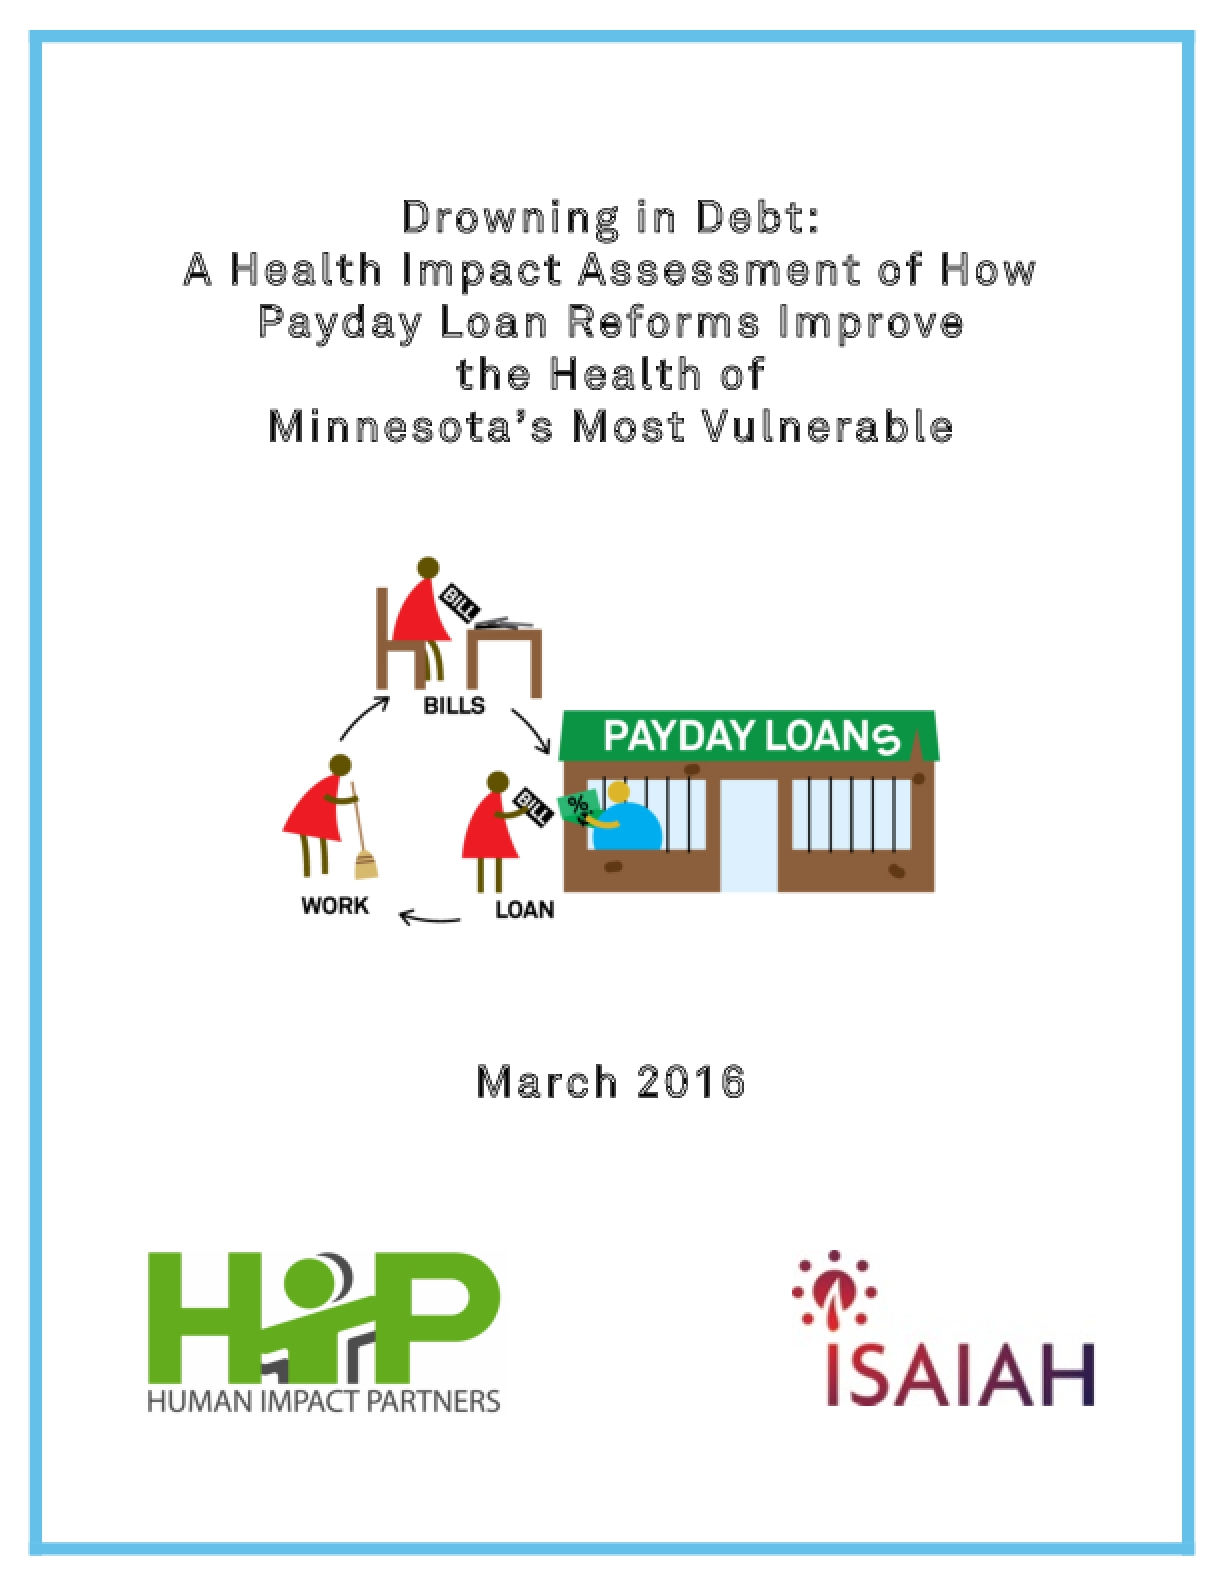 Drowning in Debt: A Health Impact Assessment of How Payday Loan Reforms Improve the Health of Minnesota's Most Vulnerable (Full Report)